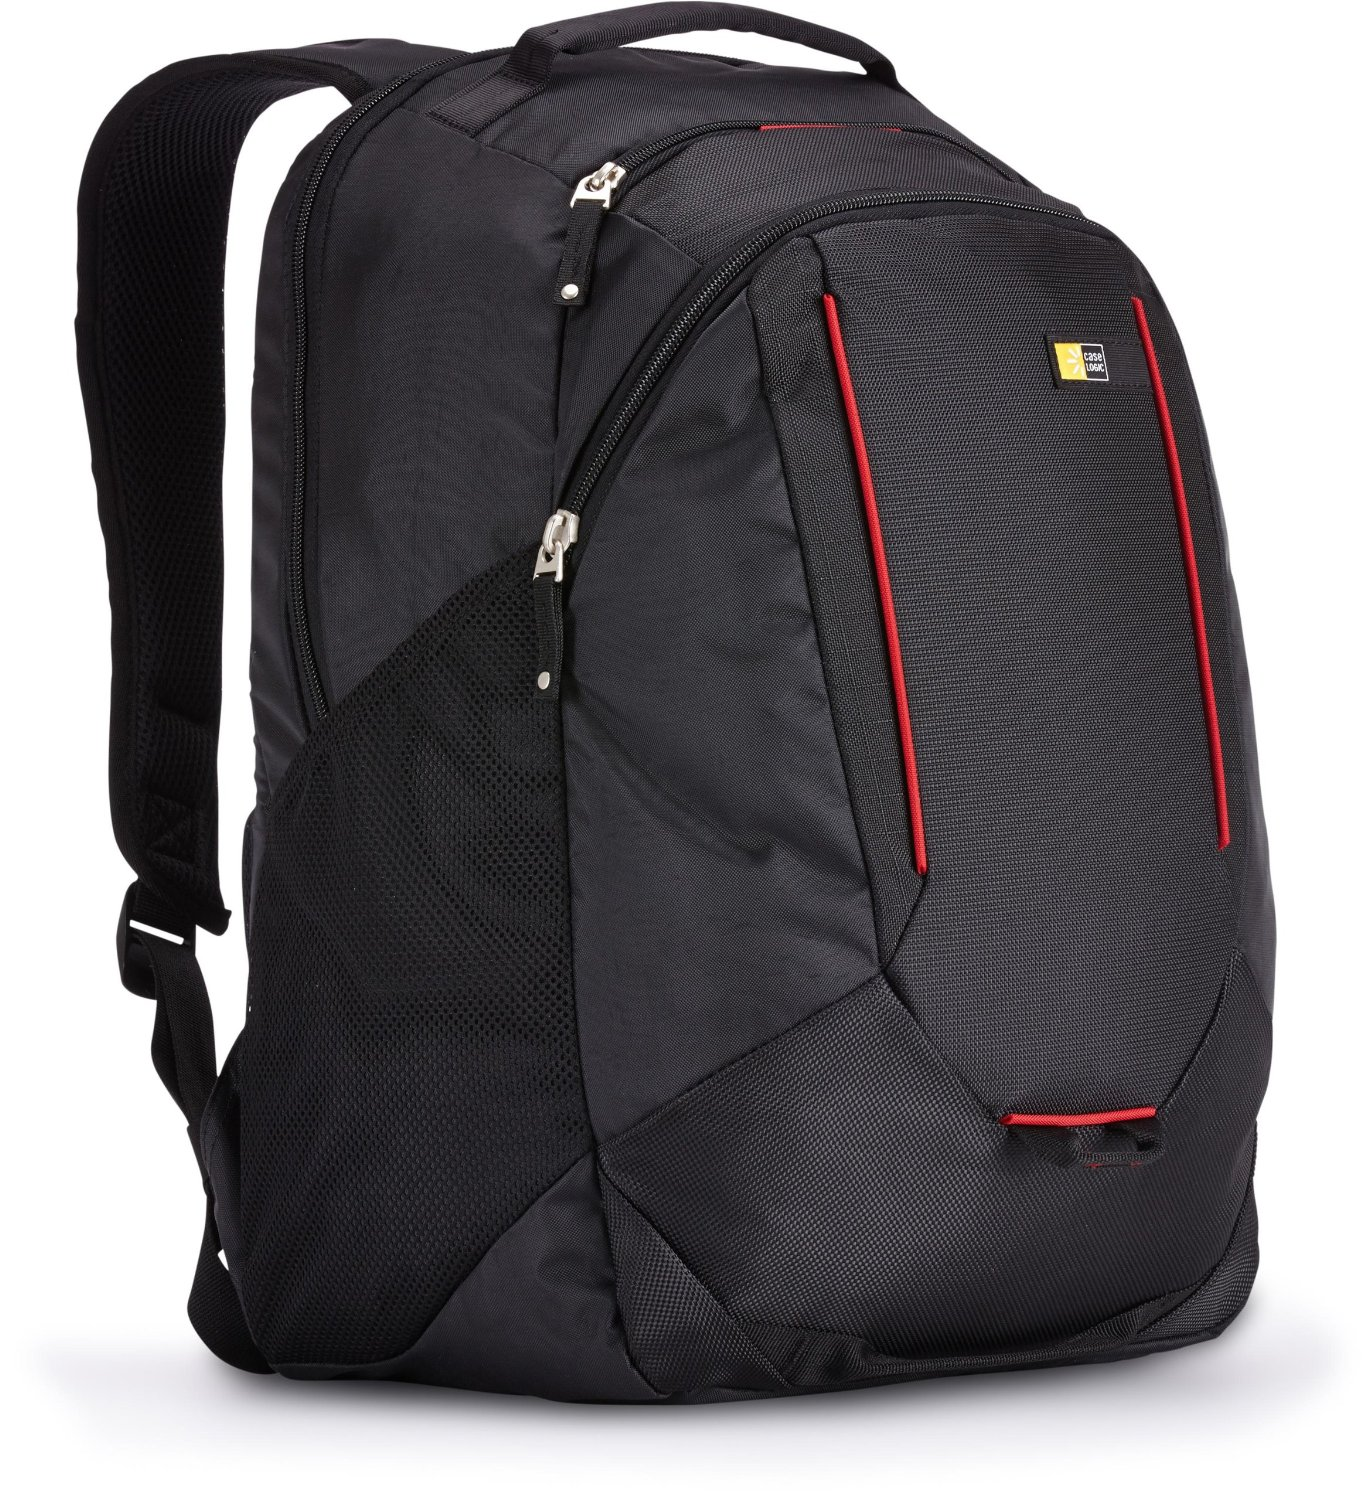 Caselogic Backpack Evolution black 15,6 - BPEB-115 portatīvo datoru soma, apvalks